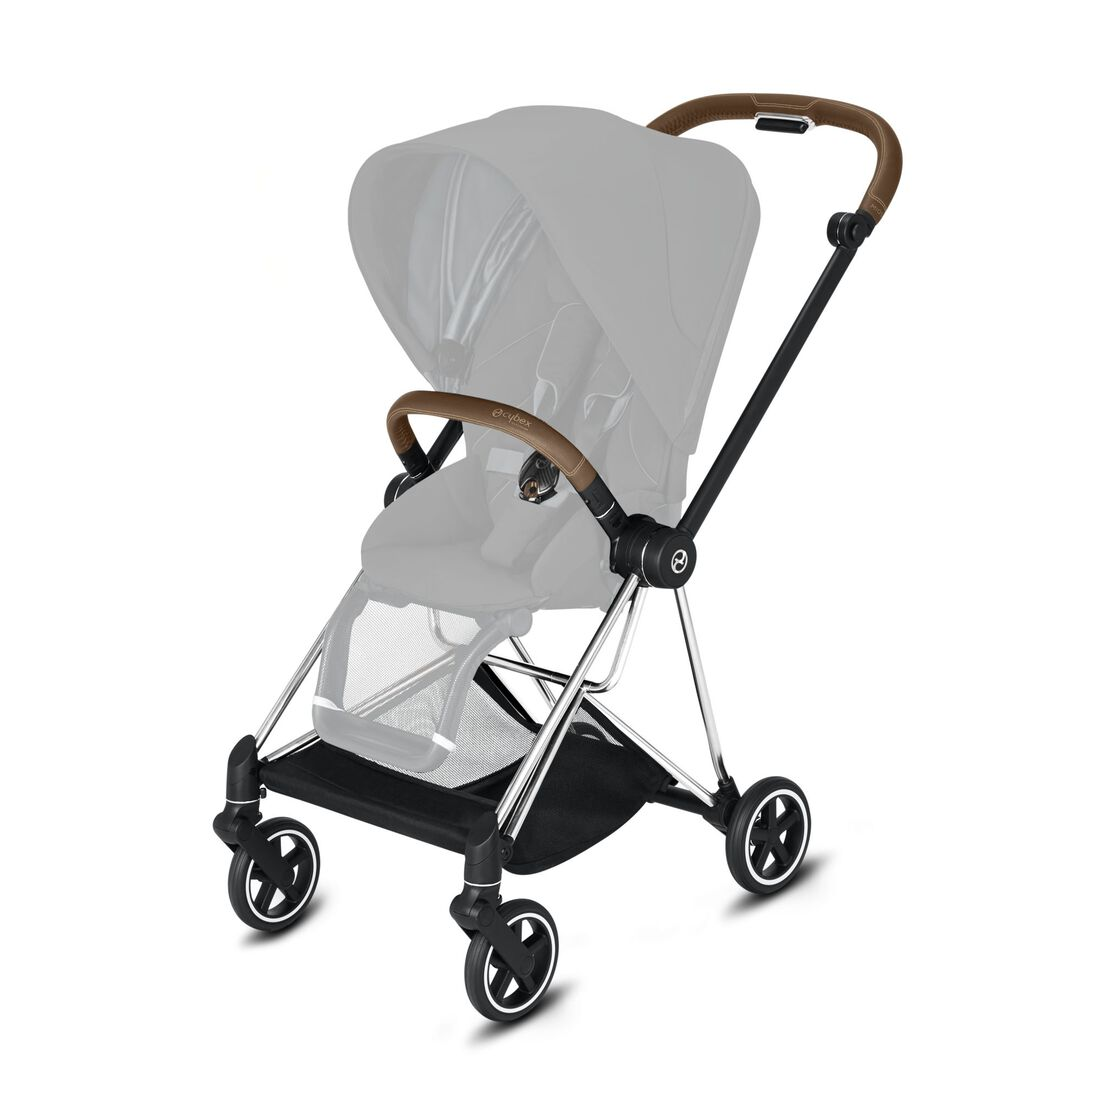 CYBEX Mios Rahmen - Chrome With Brown Details in Chrome With Brown Details large Bild 2